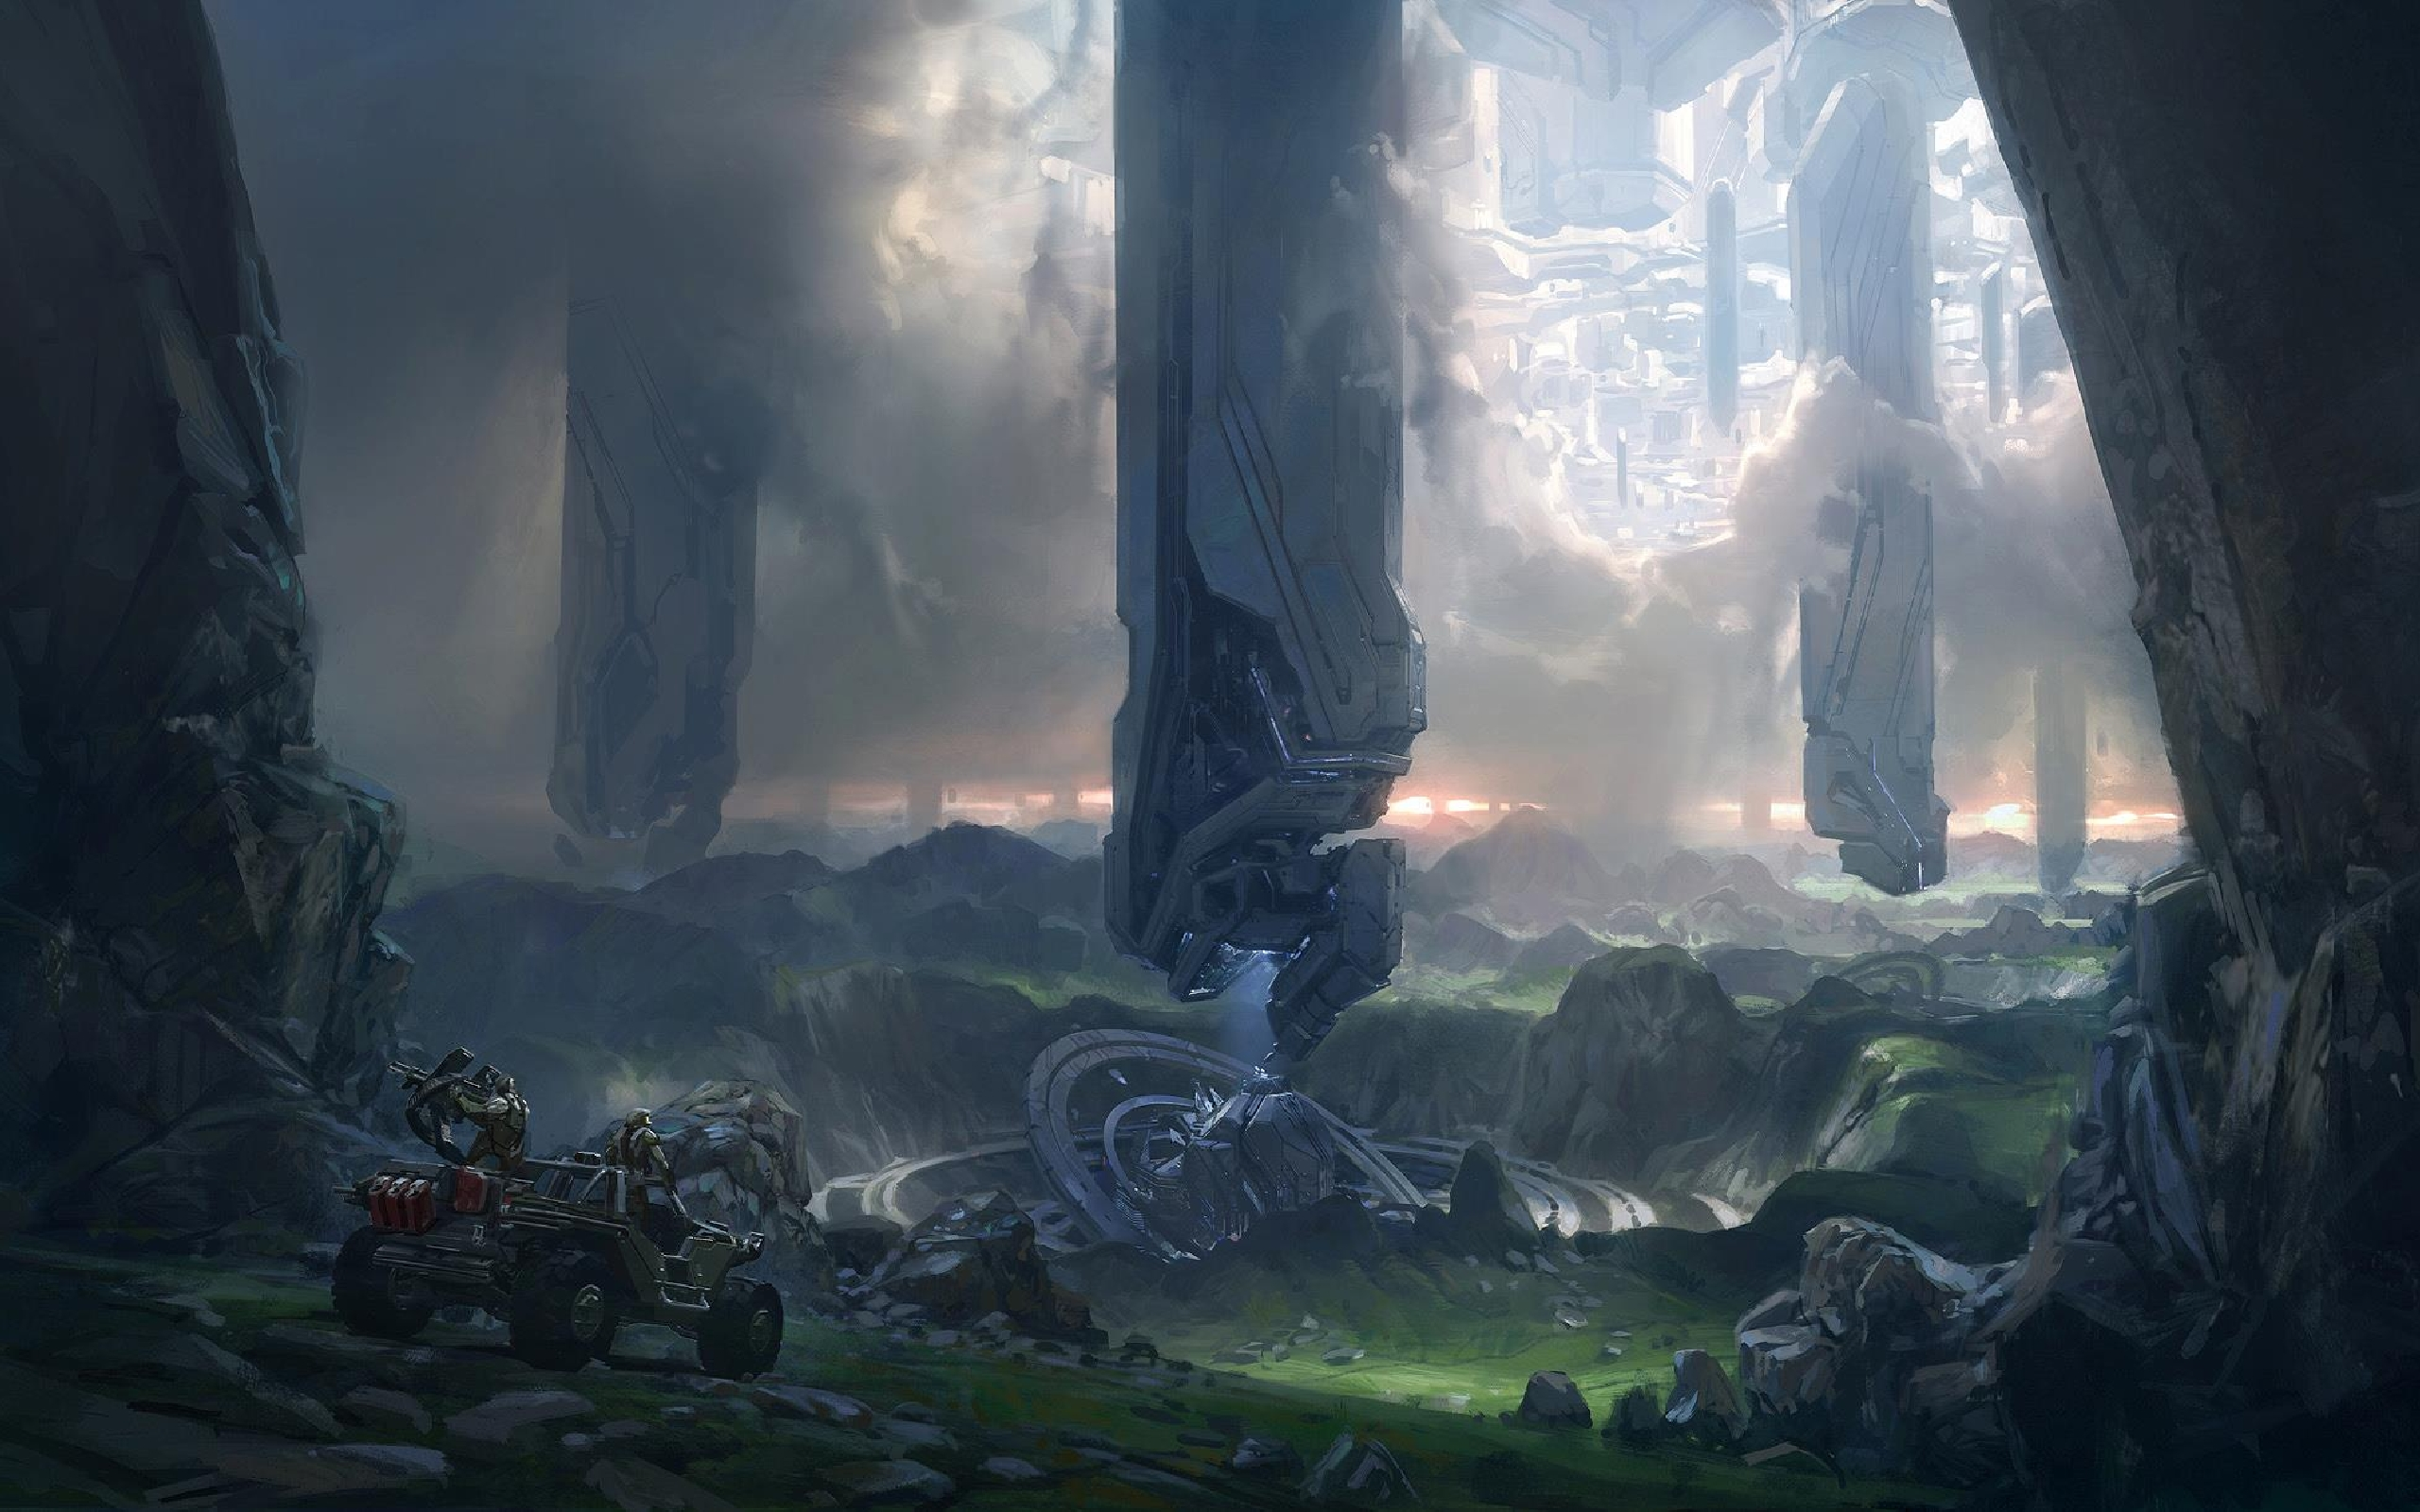 Halo 4 Wallpaper Concept Art The Jesters Corner 2560x1600